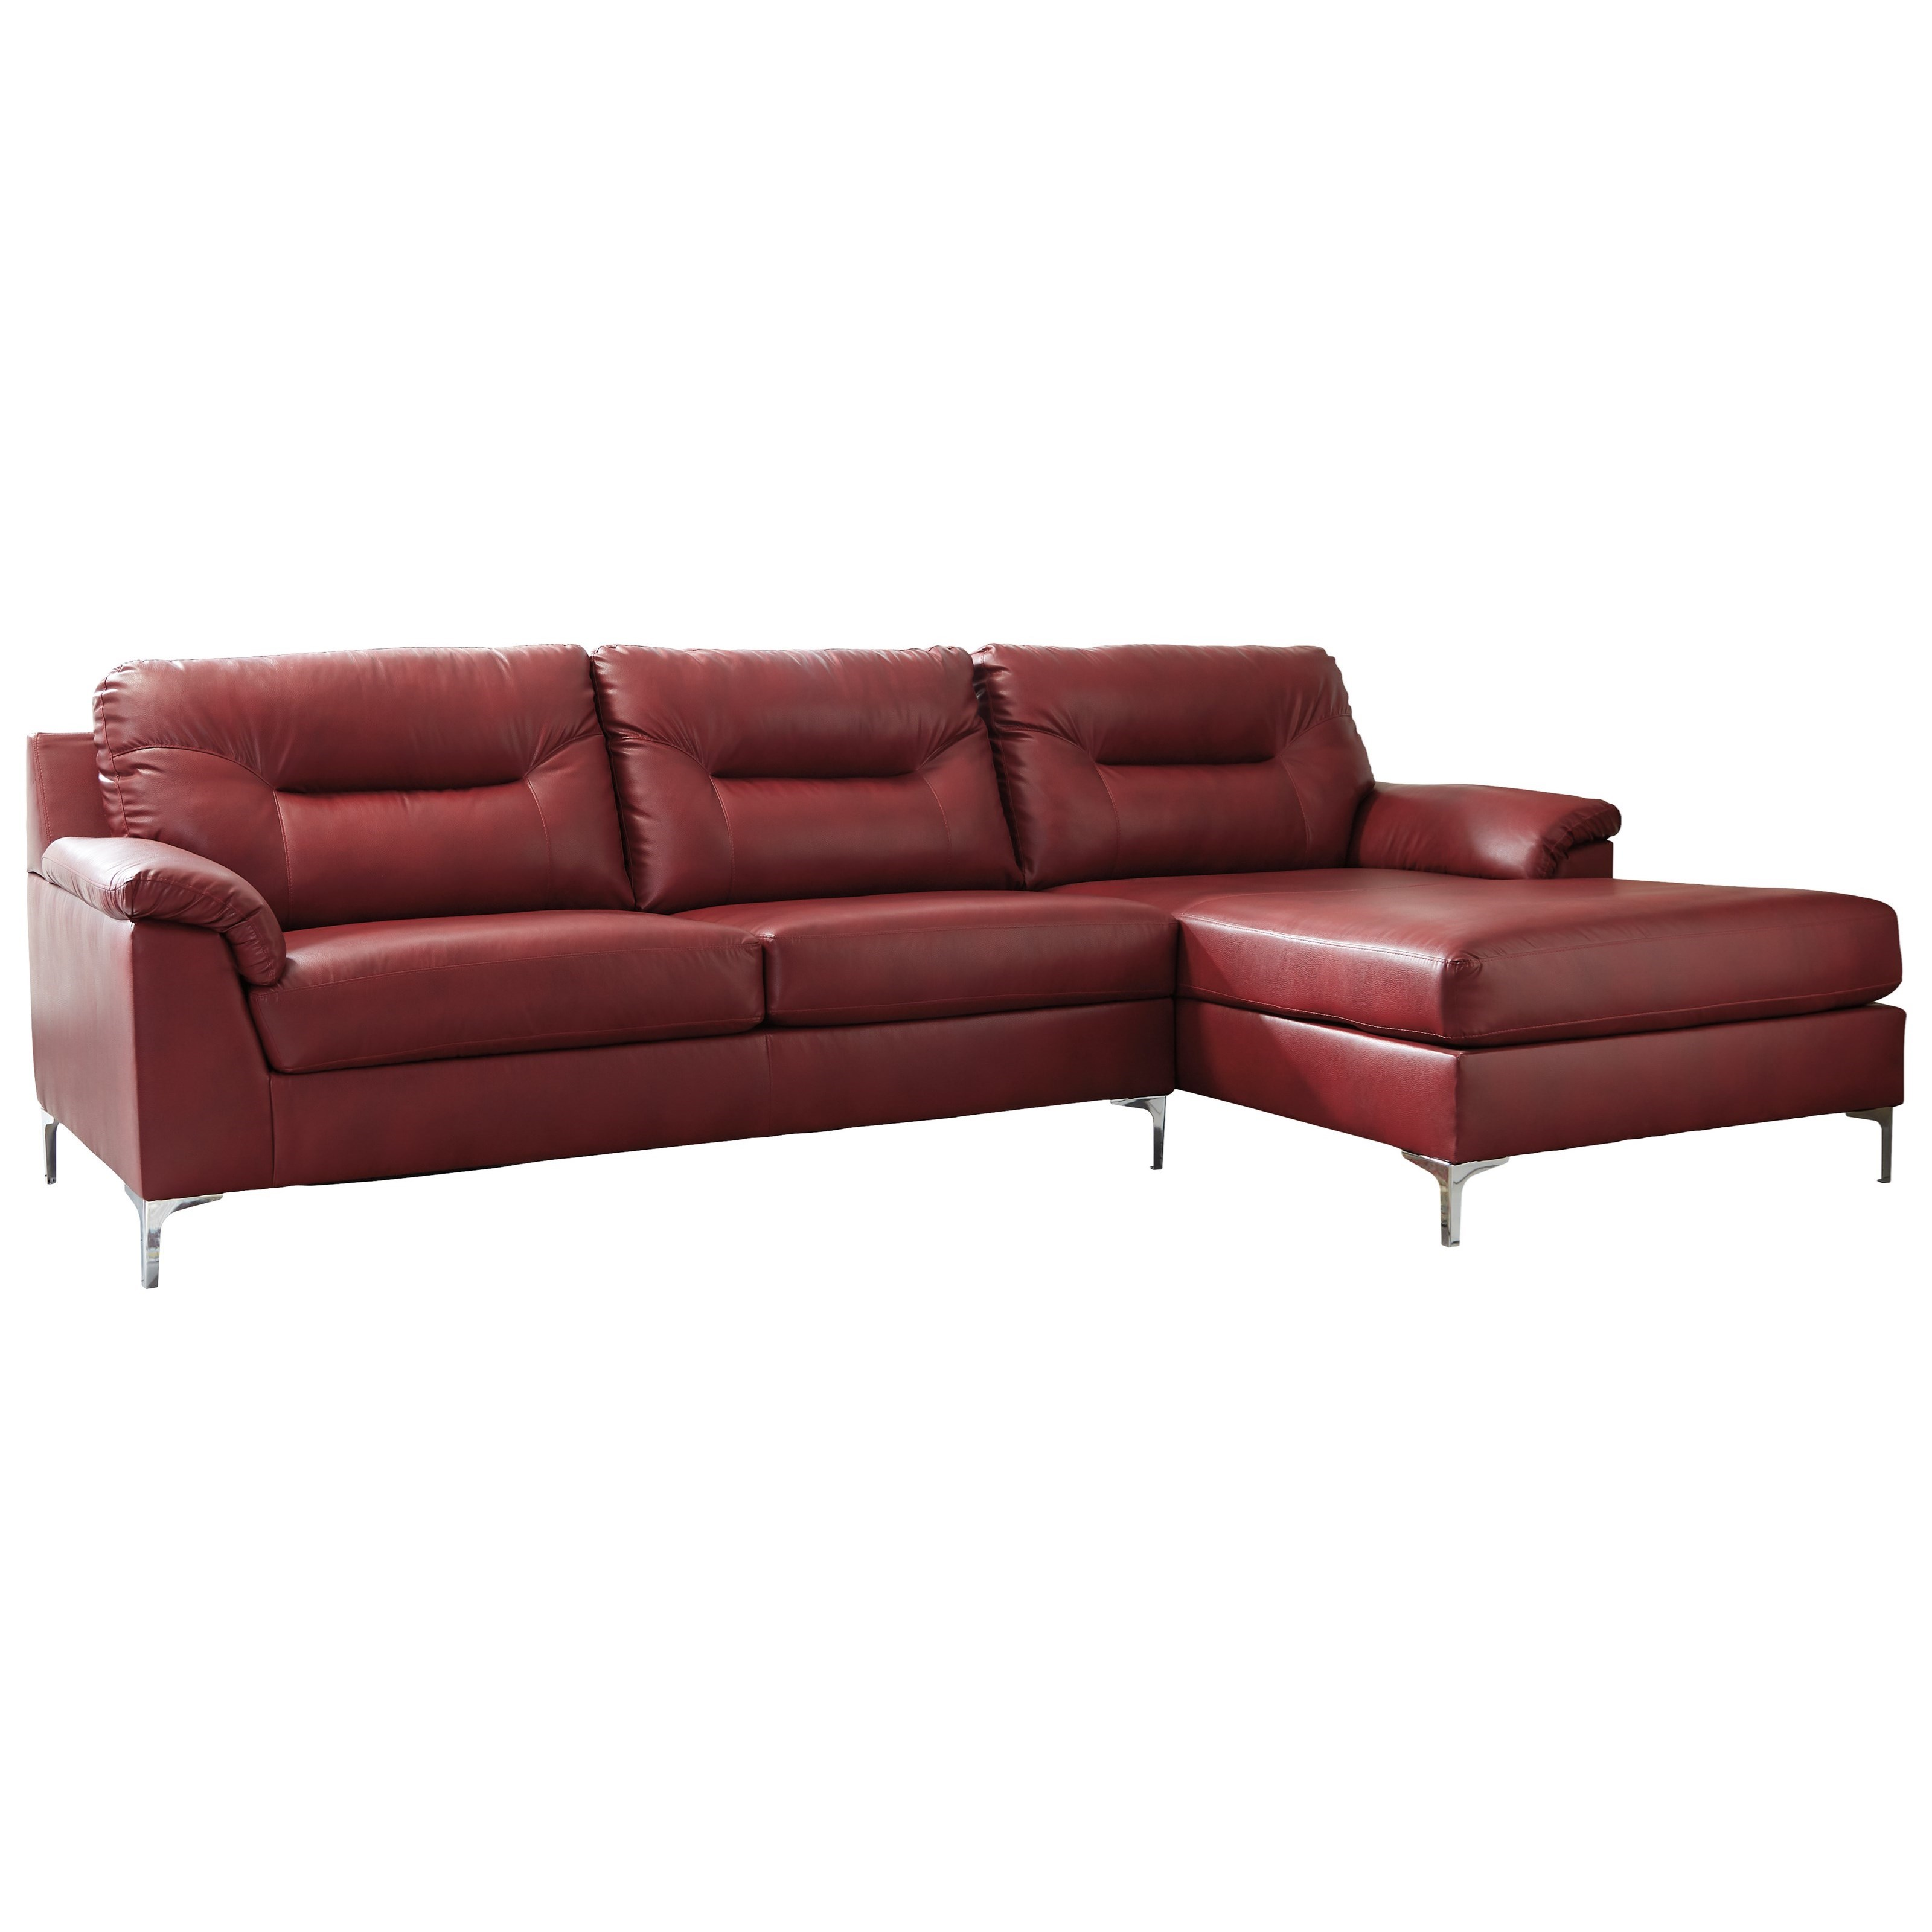 Signature Design by Ashley Tensas Sectional - Item Number: 3960366+17